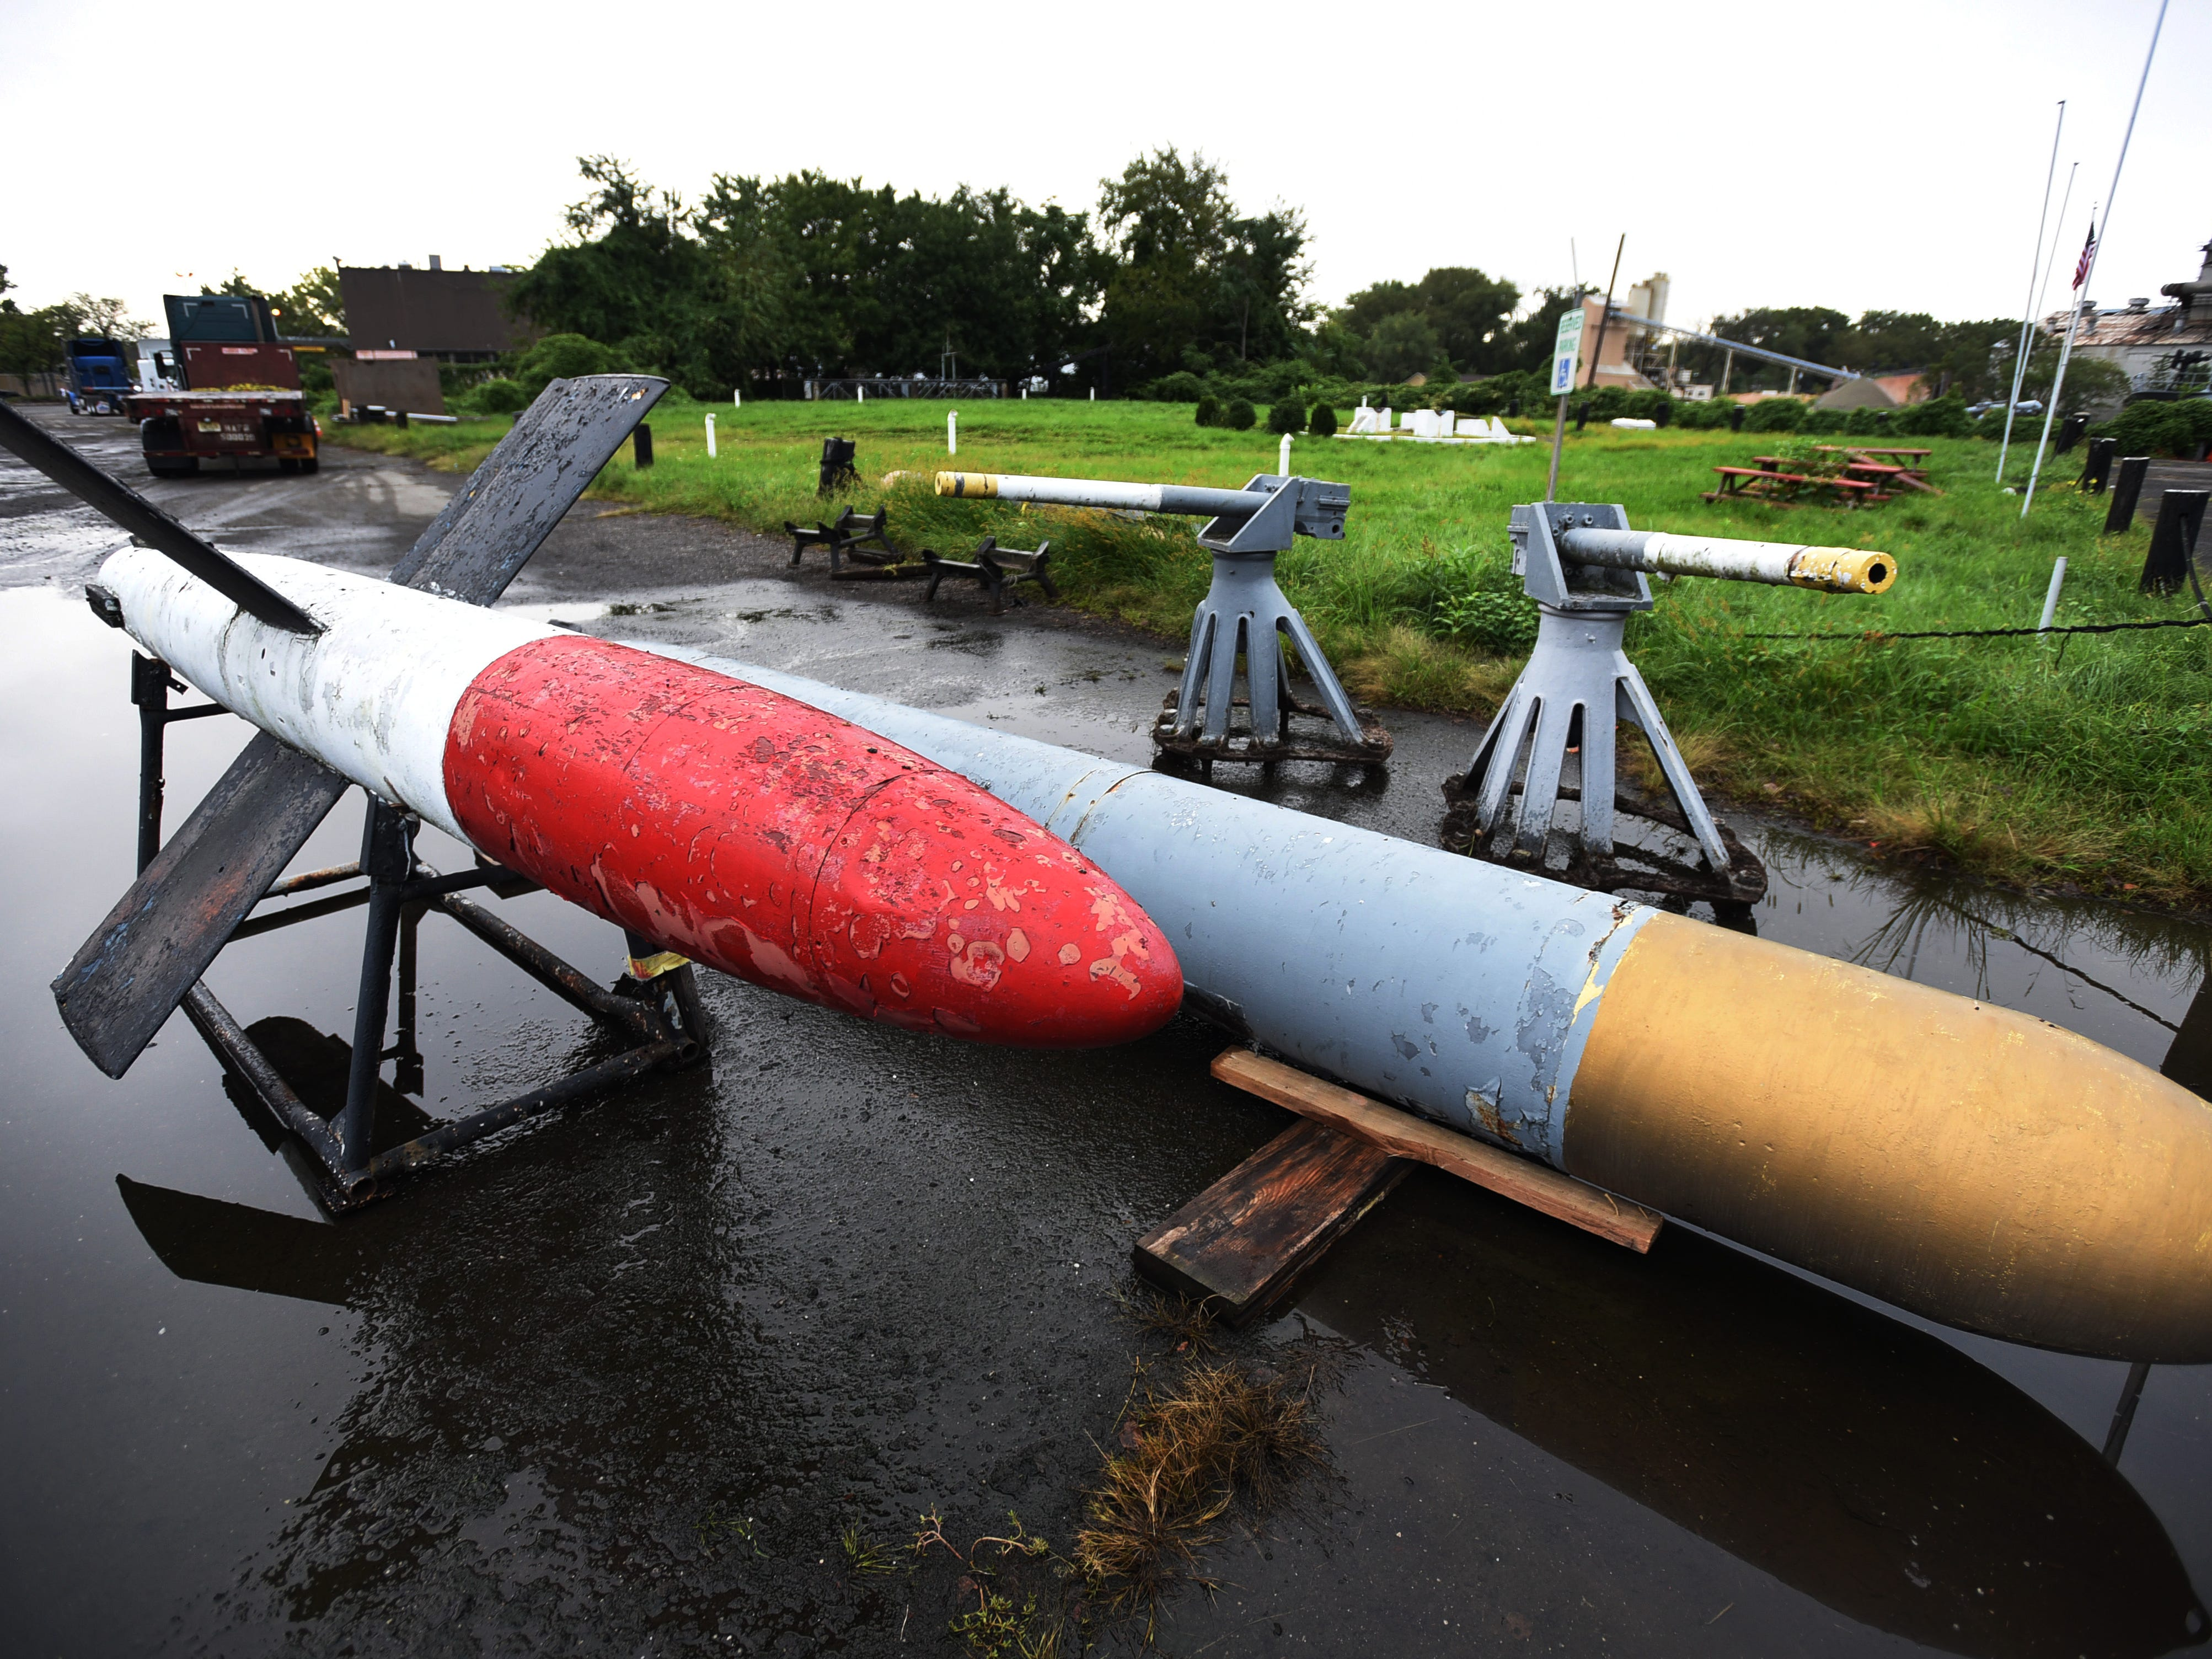 Two torpedoes and two canons wait to be hoisted onto the truck after being removed from the original site at the NJ Naval Museum in Hackensack on 09/12/18.  The 1945 USS Ling SS297, 312 foot long submarine remains at the site.